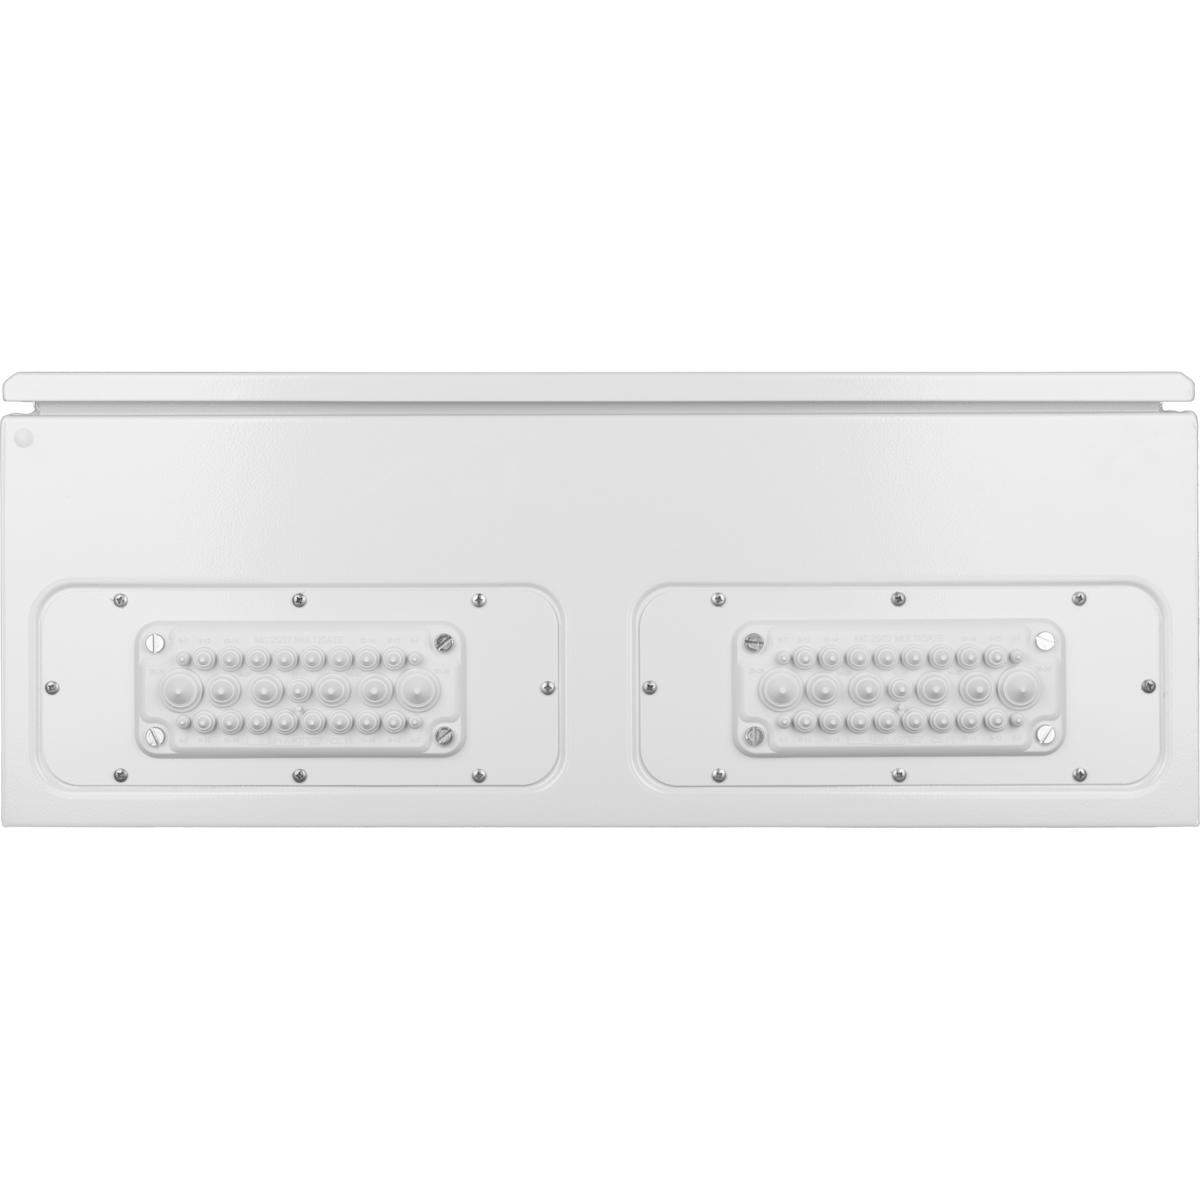 MD2400/16E - Analogue addressable fire alarm control panel